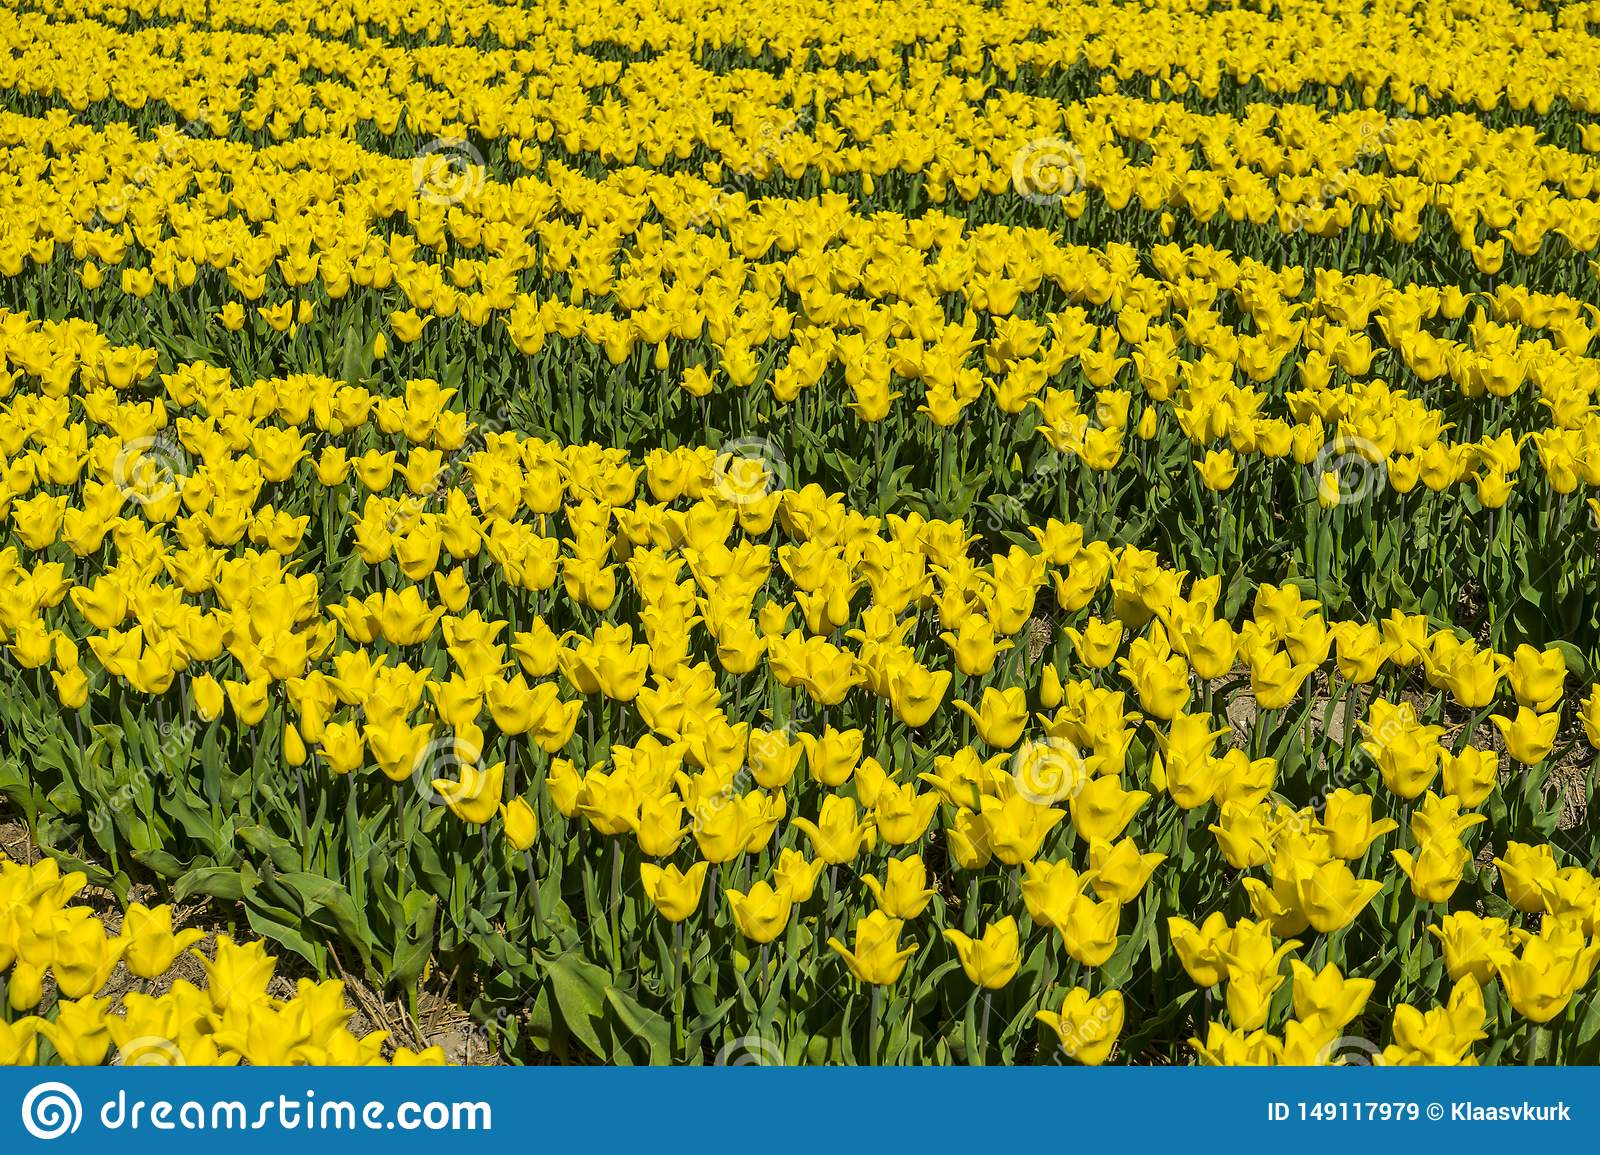 Left to right yellow and green dutch tulp field patern. Bright sunlight traditional holland tulp field from a farmer` s land.